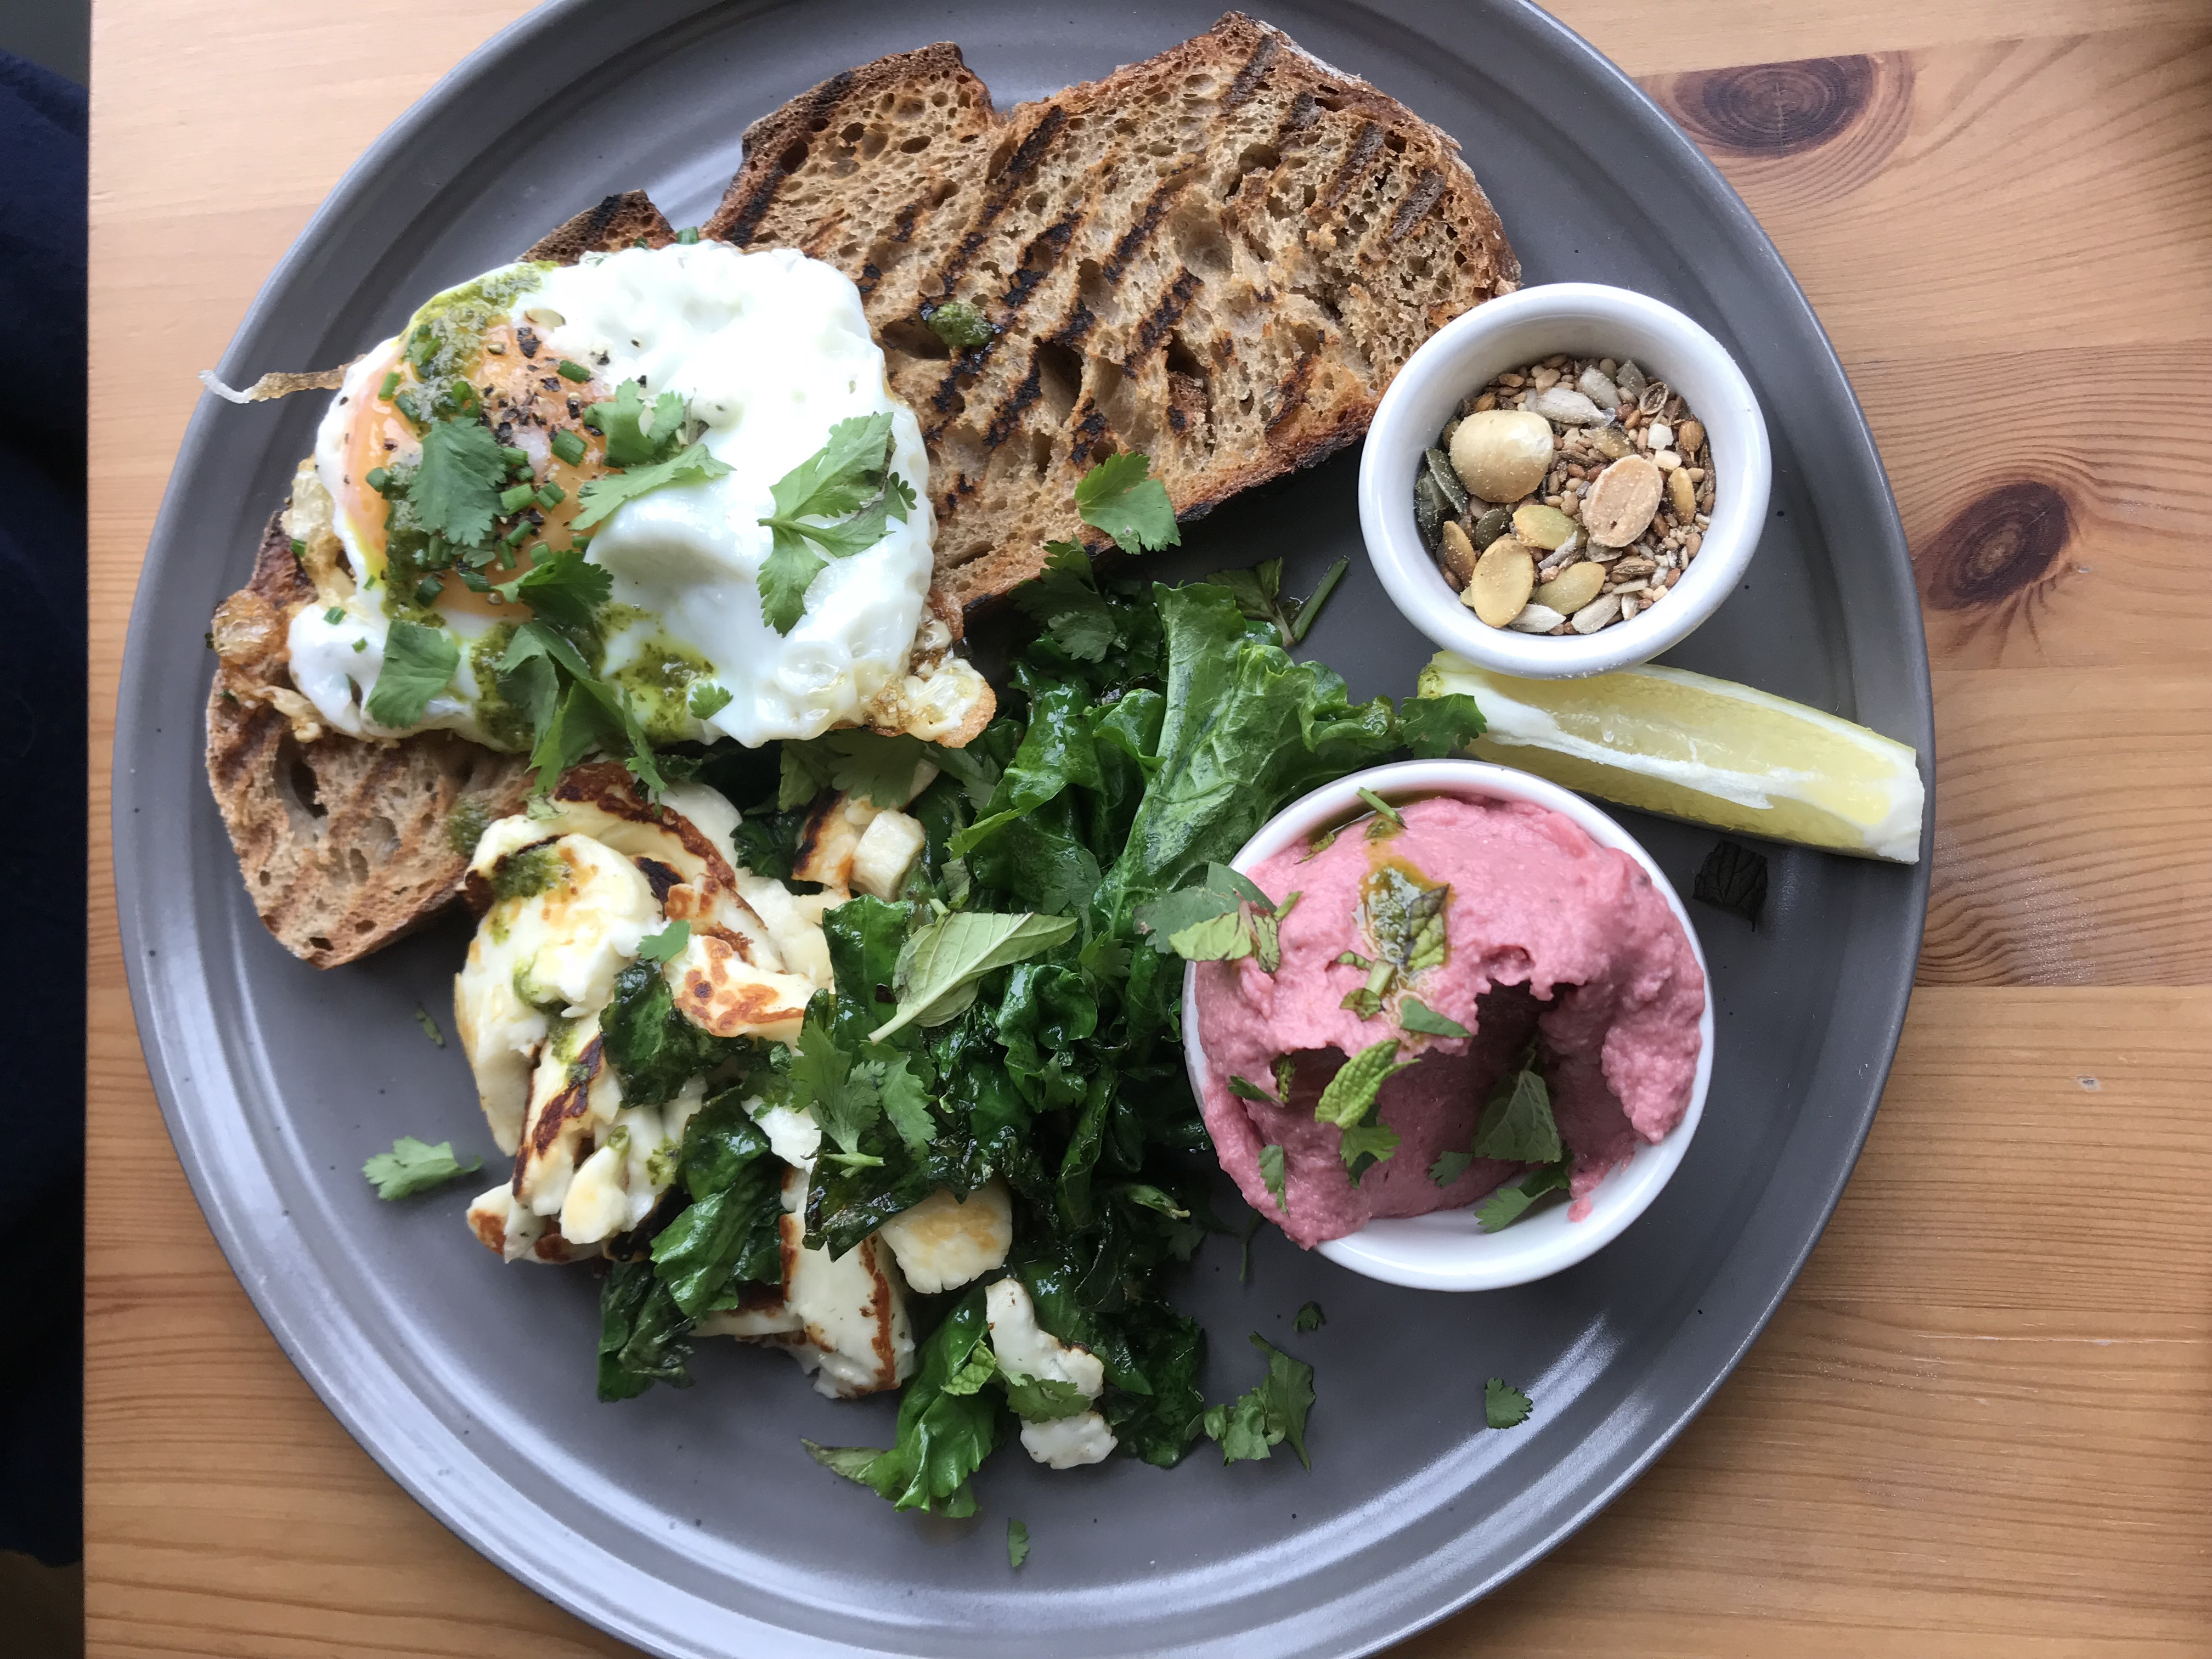 The Aussie | Where to go for Brunch in Newcastle & the Coast | Kith & Kin Independent Coffee Shop & Kitchen in Whitley Bay | Food Review | Elle Blonde Luxury Lifestyle Destination Blog